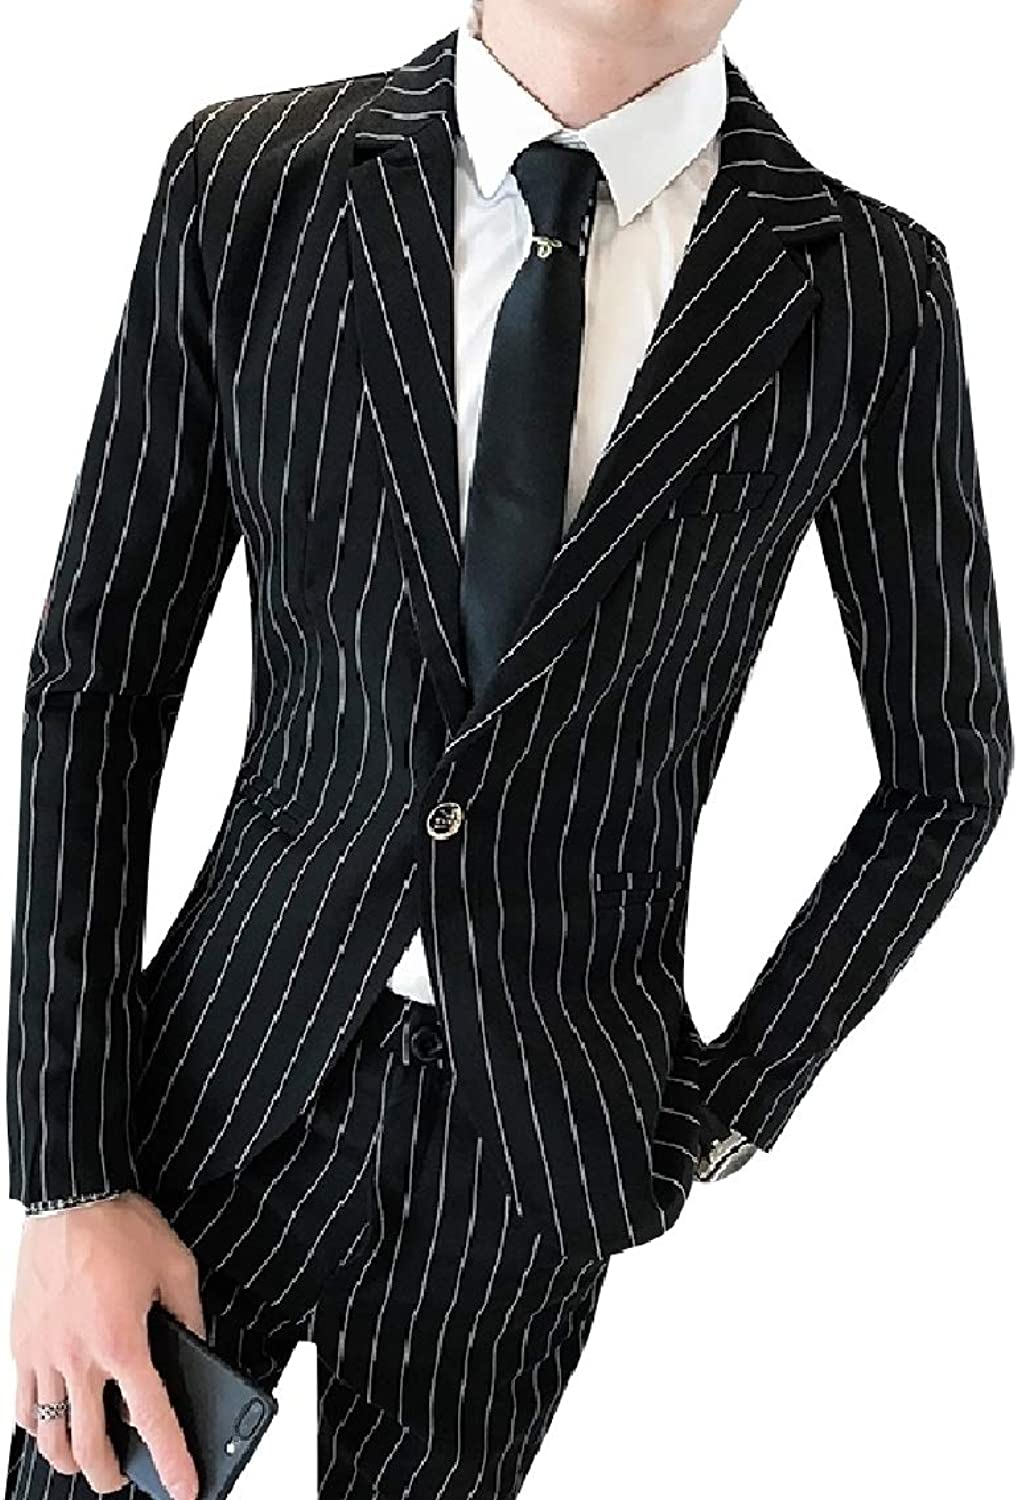 86f67397fb635 Mfasica Men's Men's Men's 2-Piece Oversize Striped Bodycon Suit ...